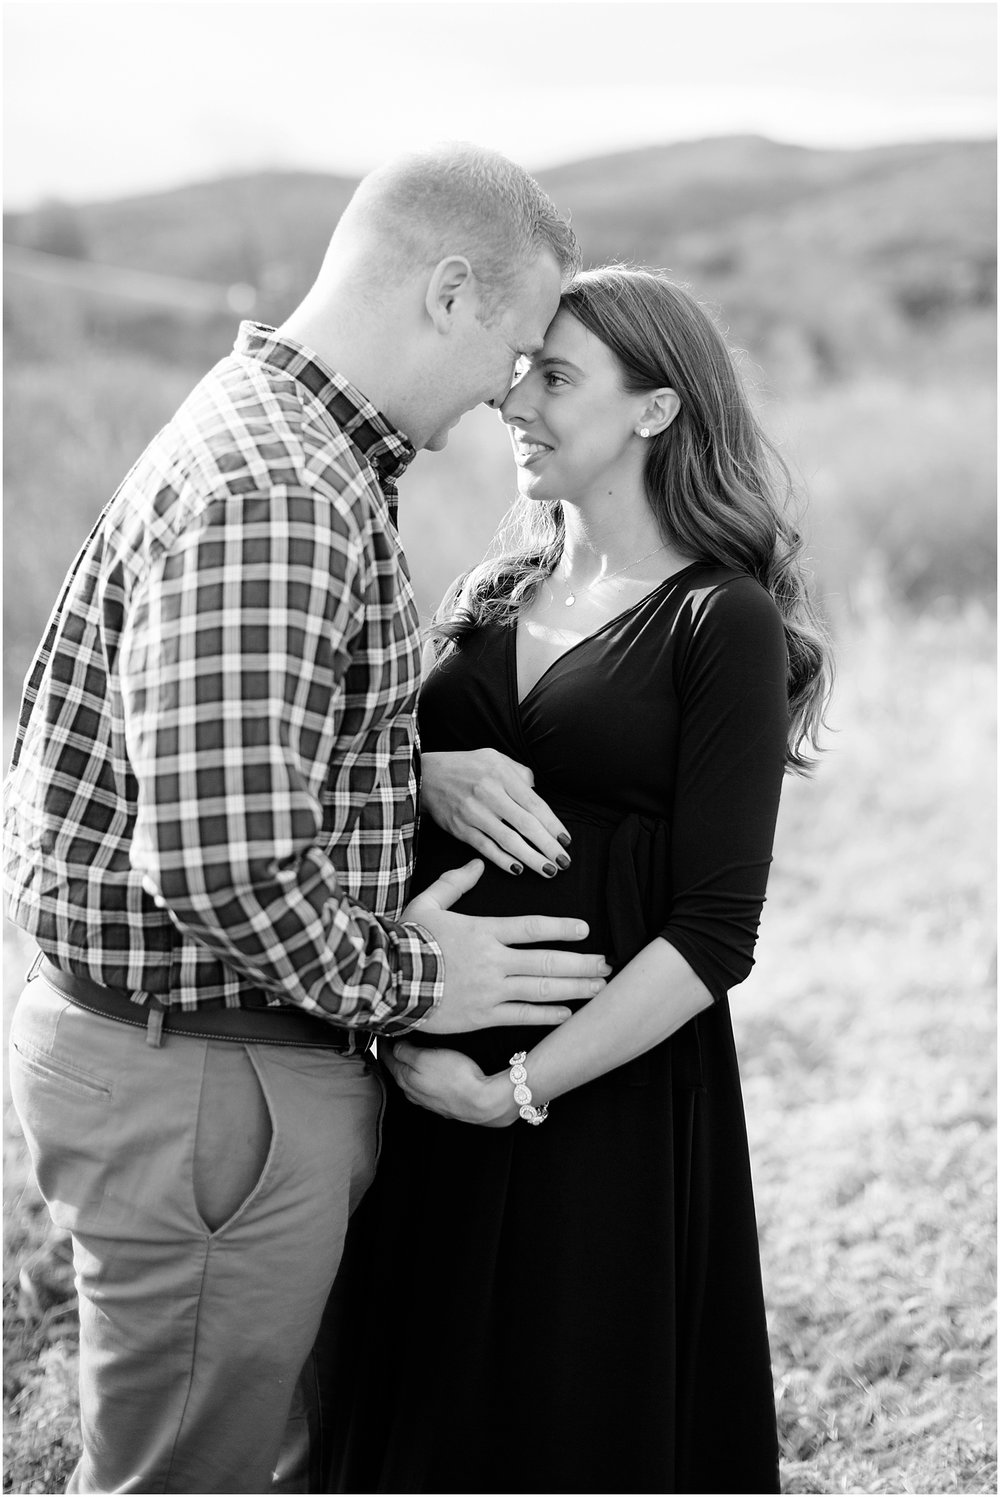 Ashley Powell Photography Hannah Fallion Maternity Blog Images_0021.jpg